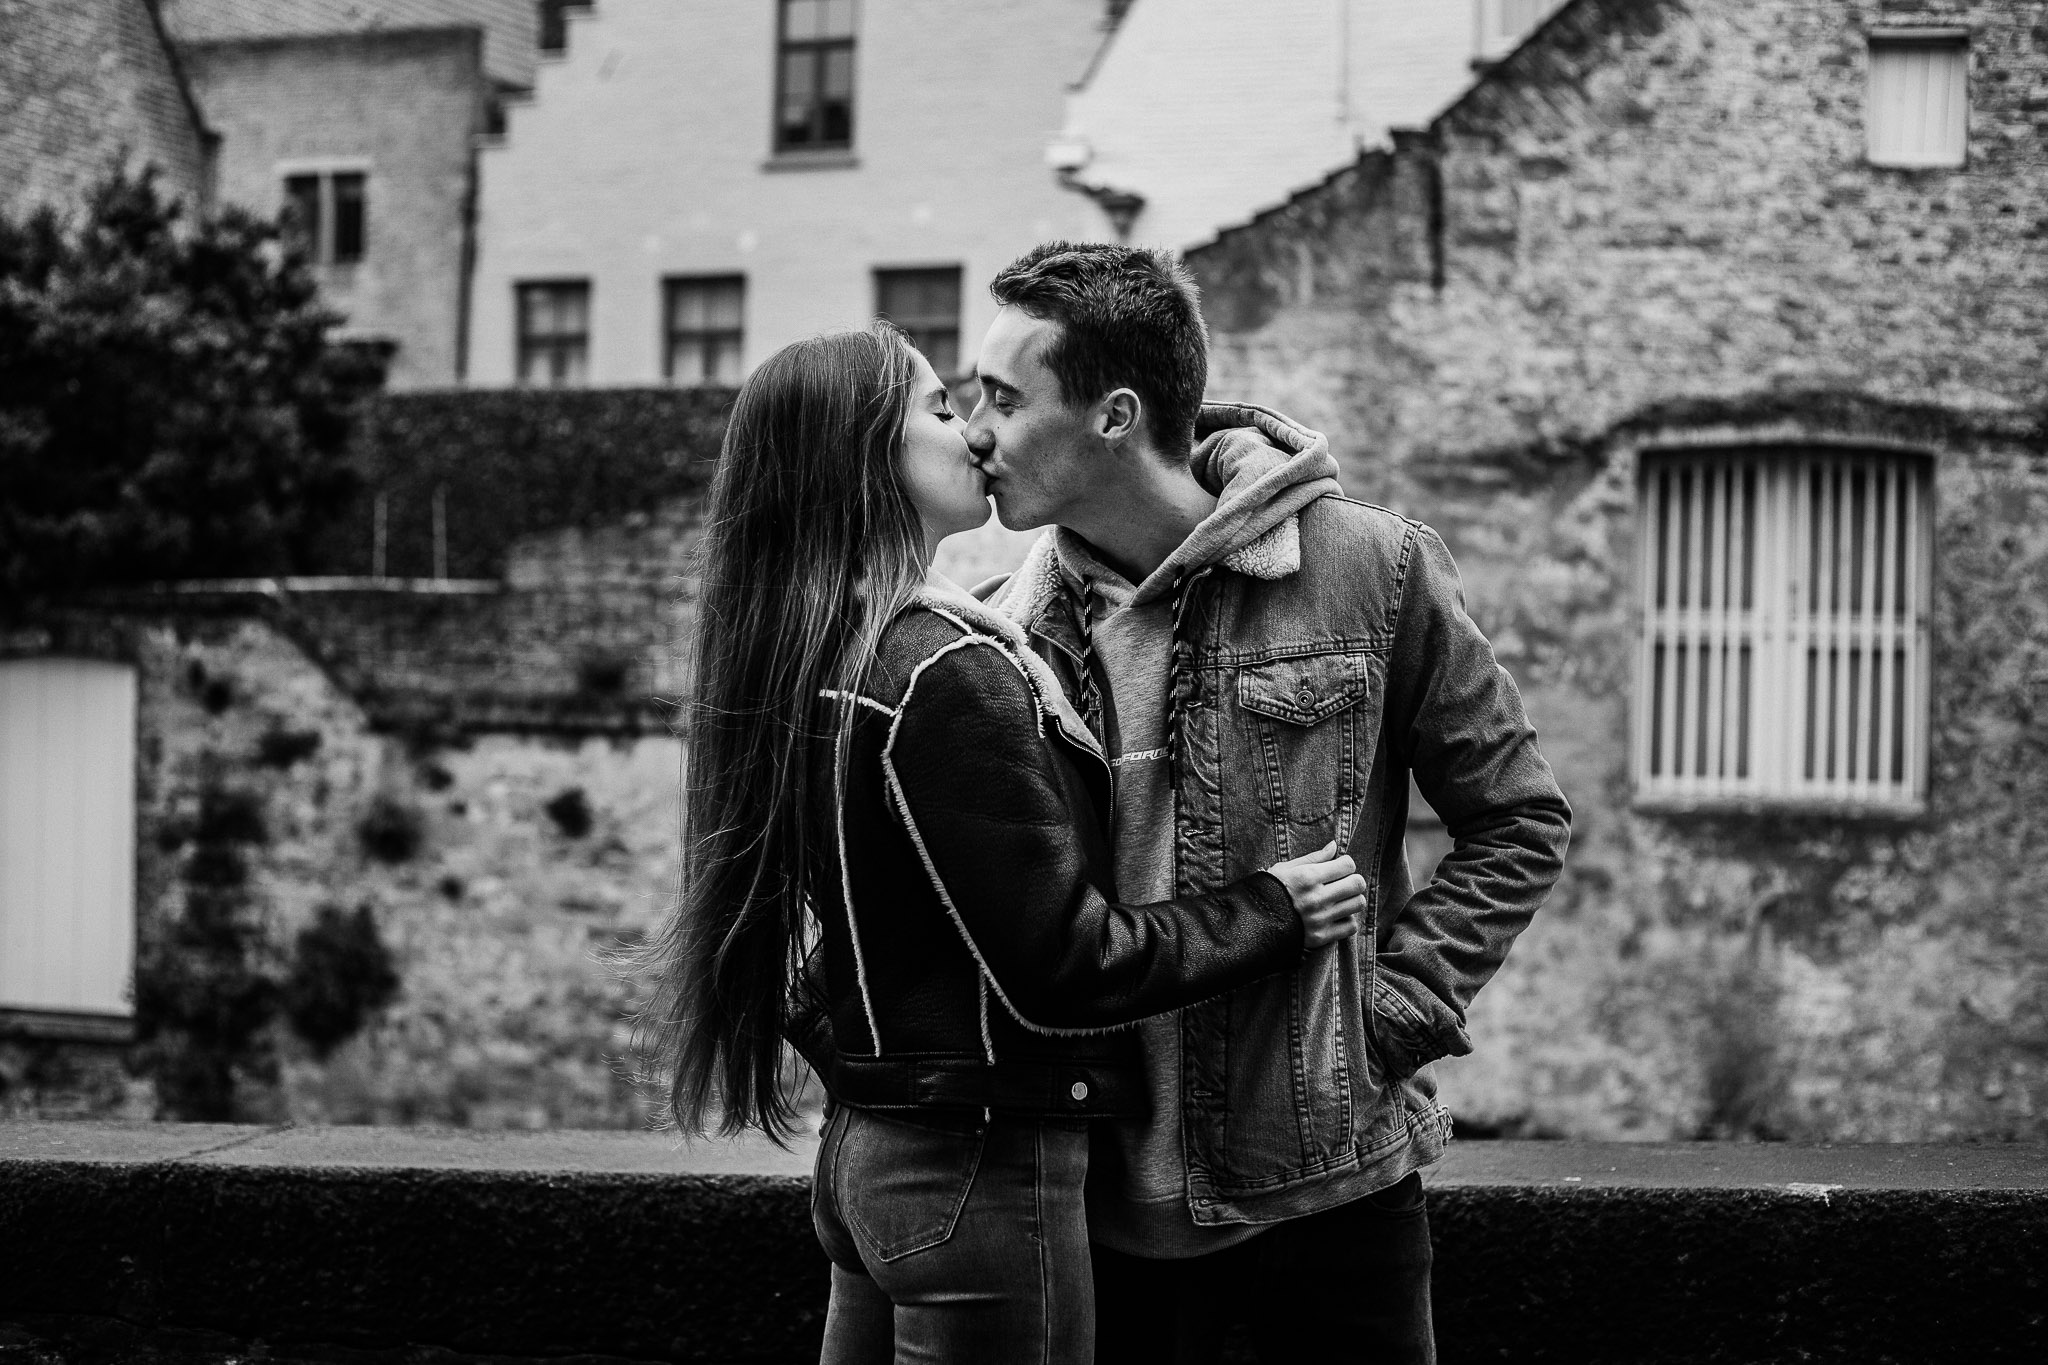 Romantic kiss alongside the canal in Bruges, Belgium